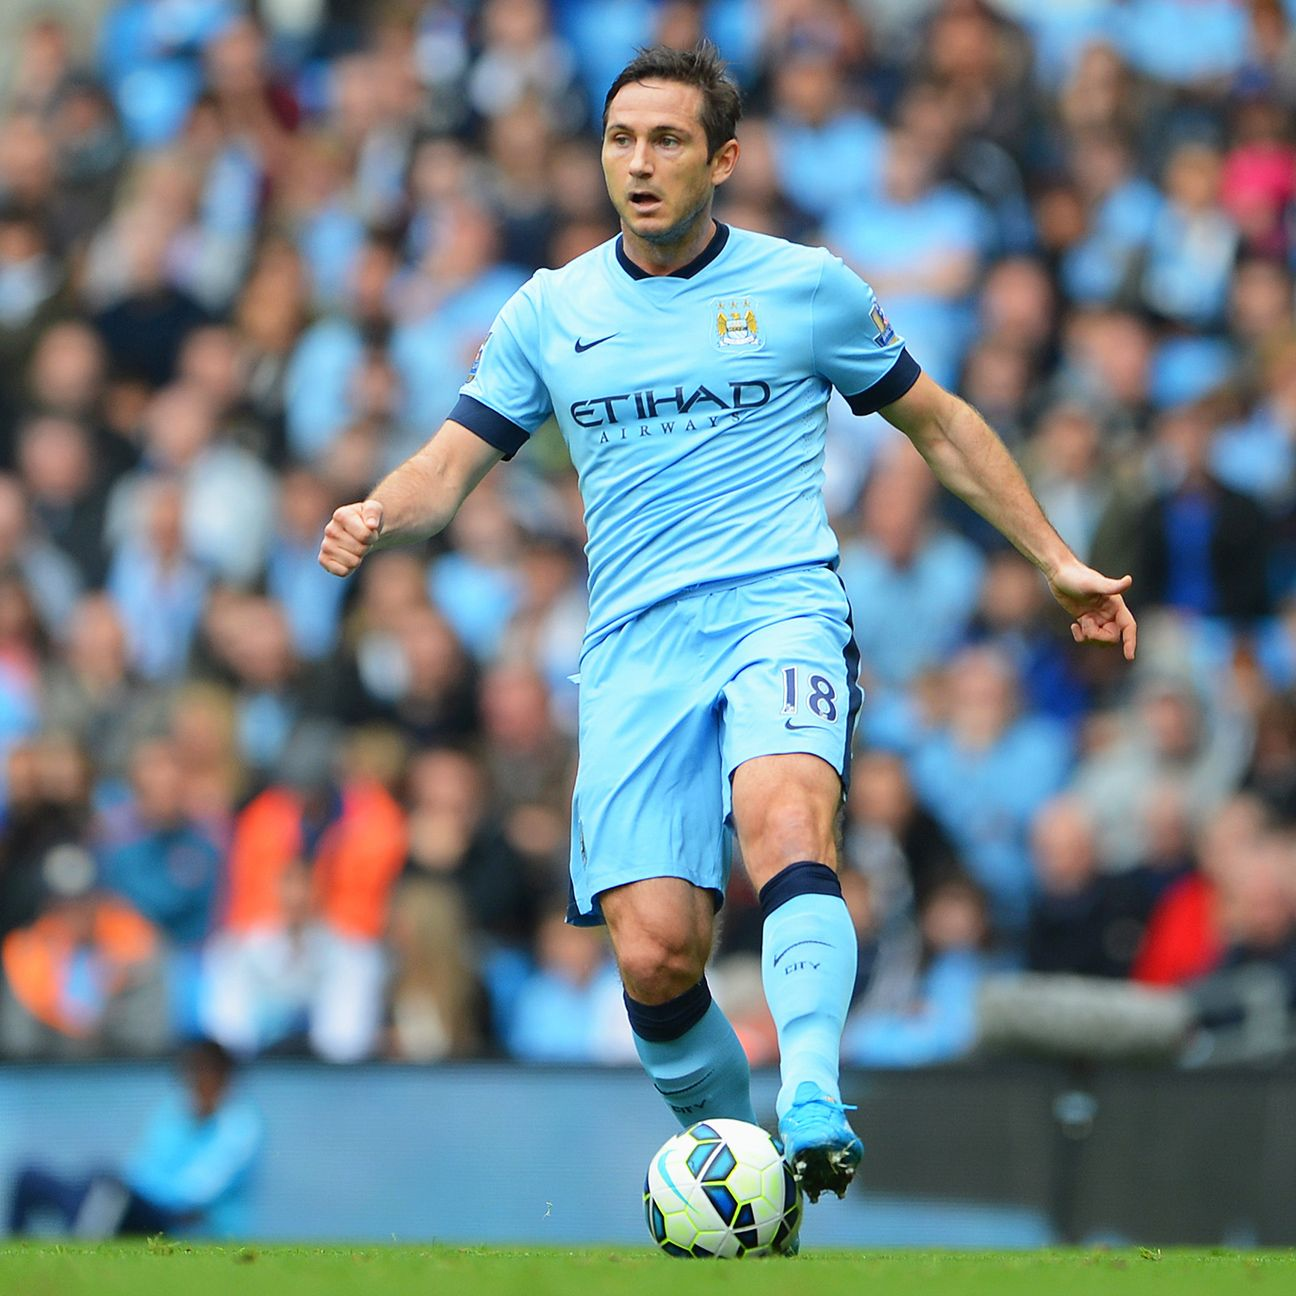 Veteran Frank Lampard offers a stability in midfield that could benefit City against Bayern.